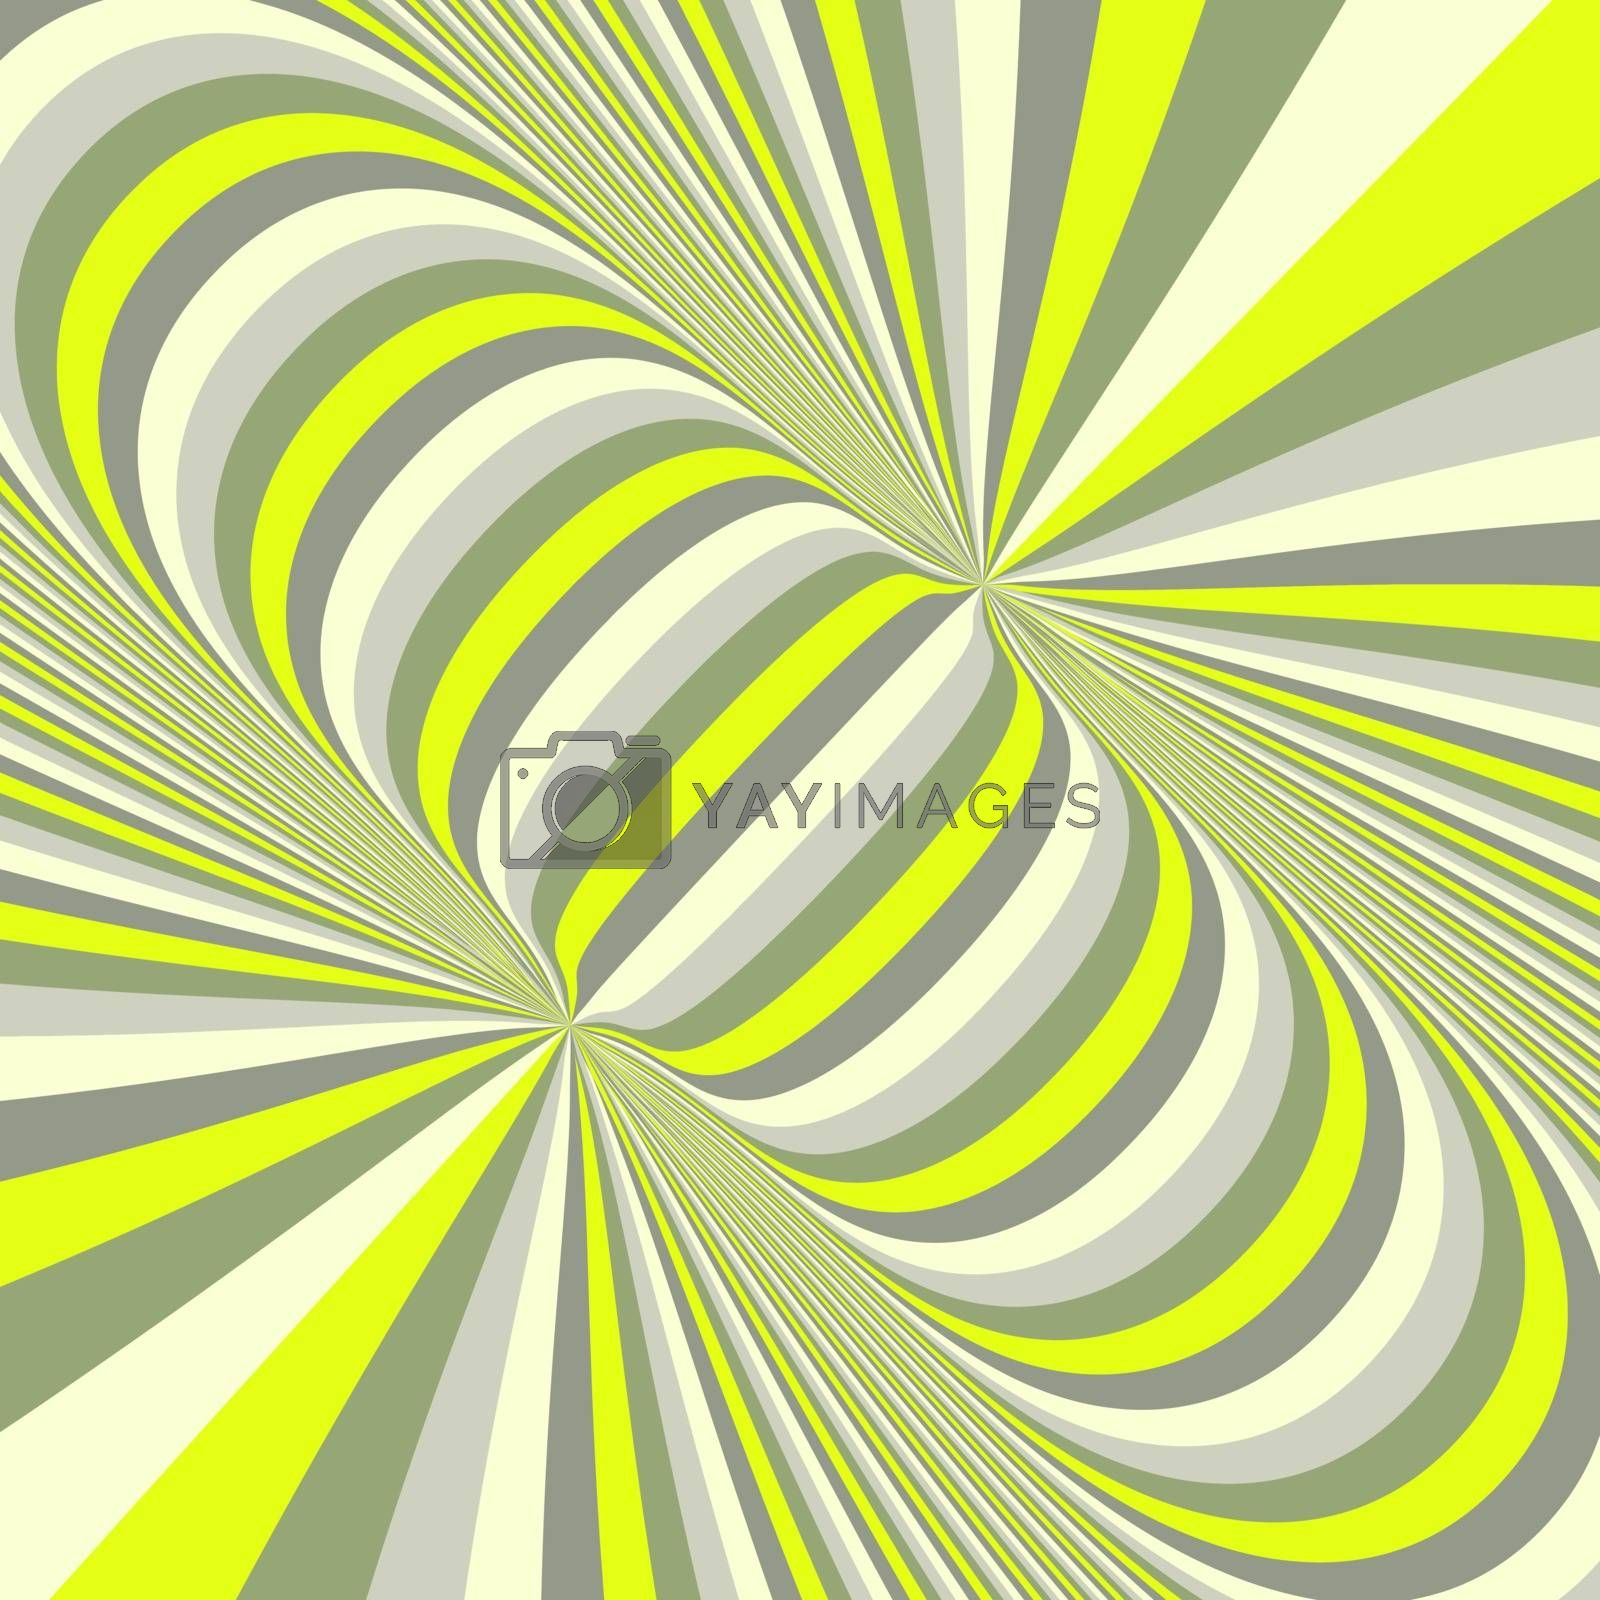 Abstract 3d geometrical background. Pattern with optical illusion. Vector illustration.